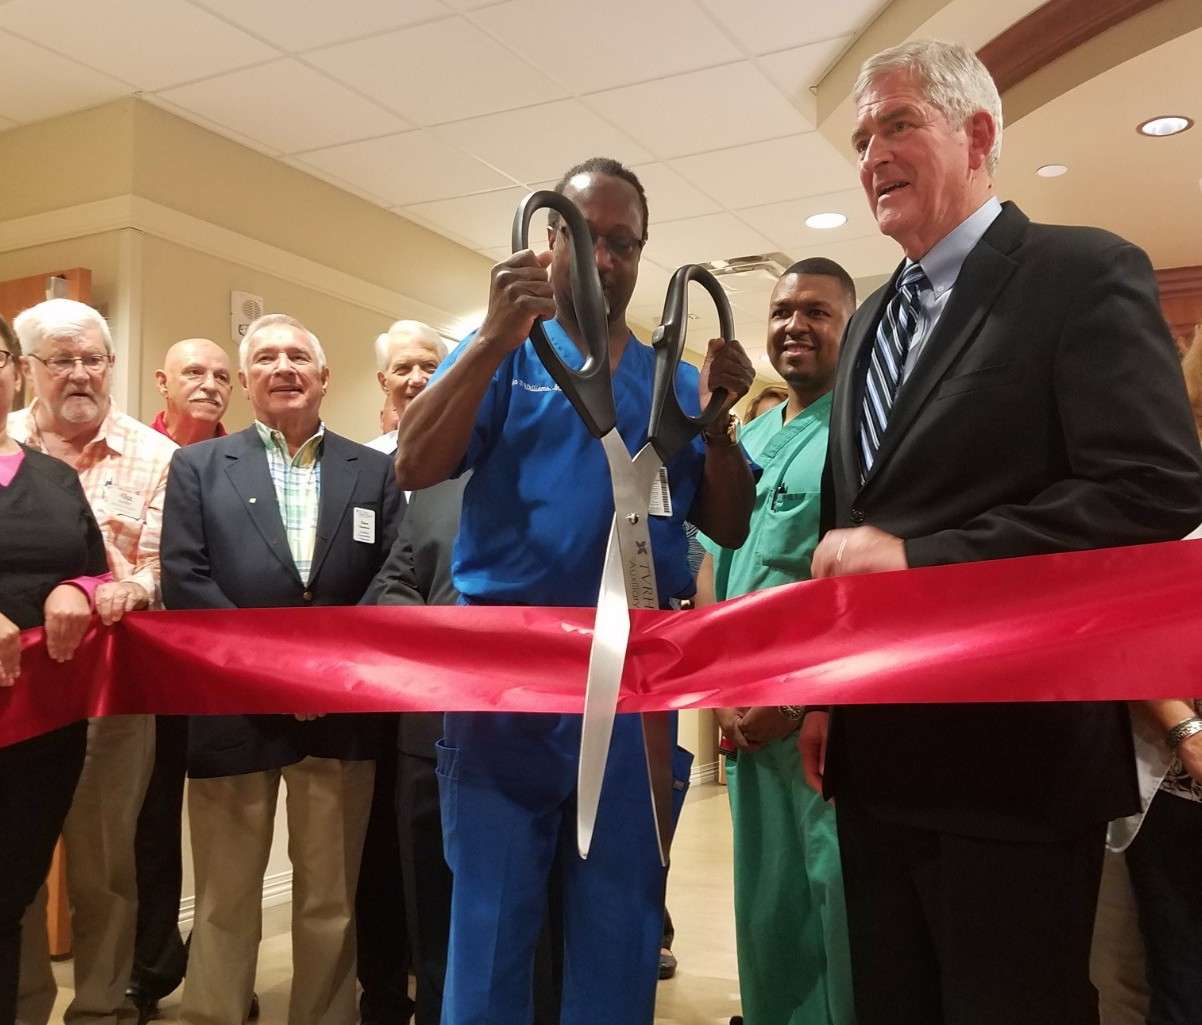 Ribbon cutting at Joint Institute in The Villages